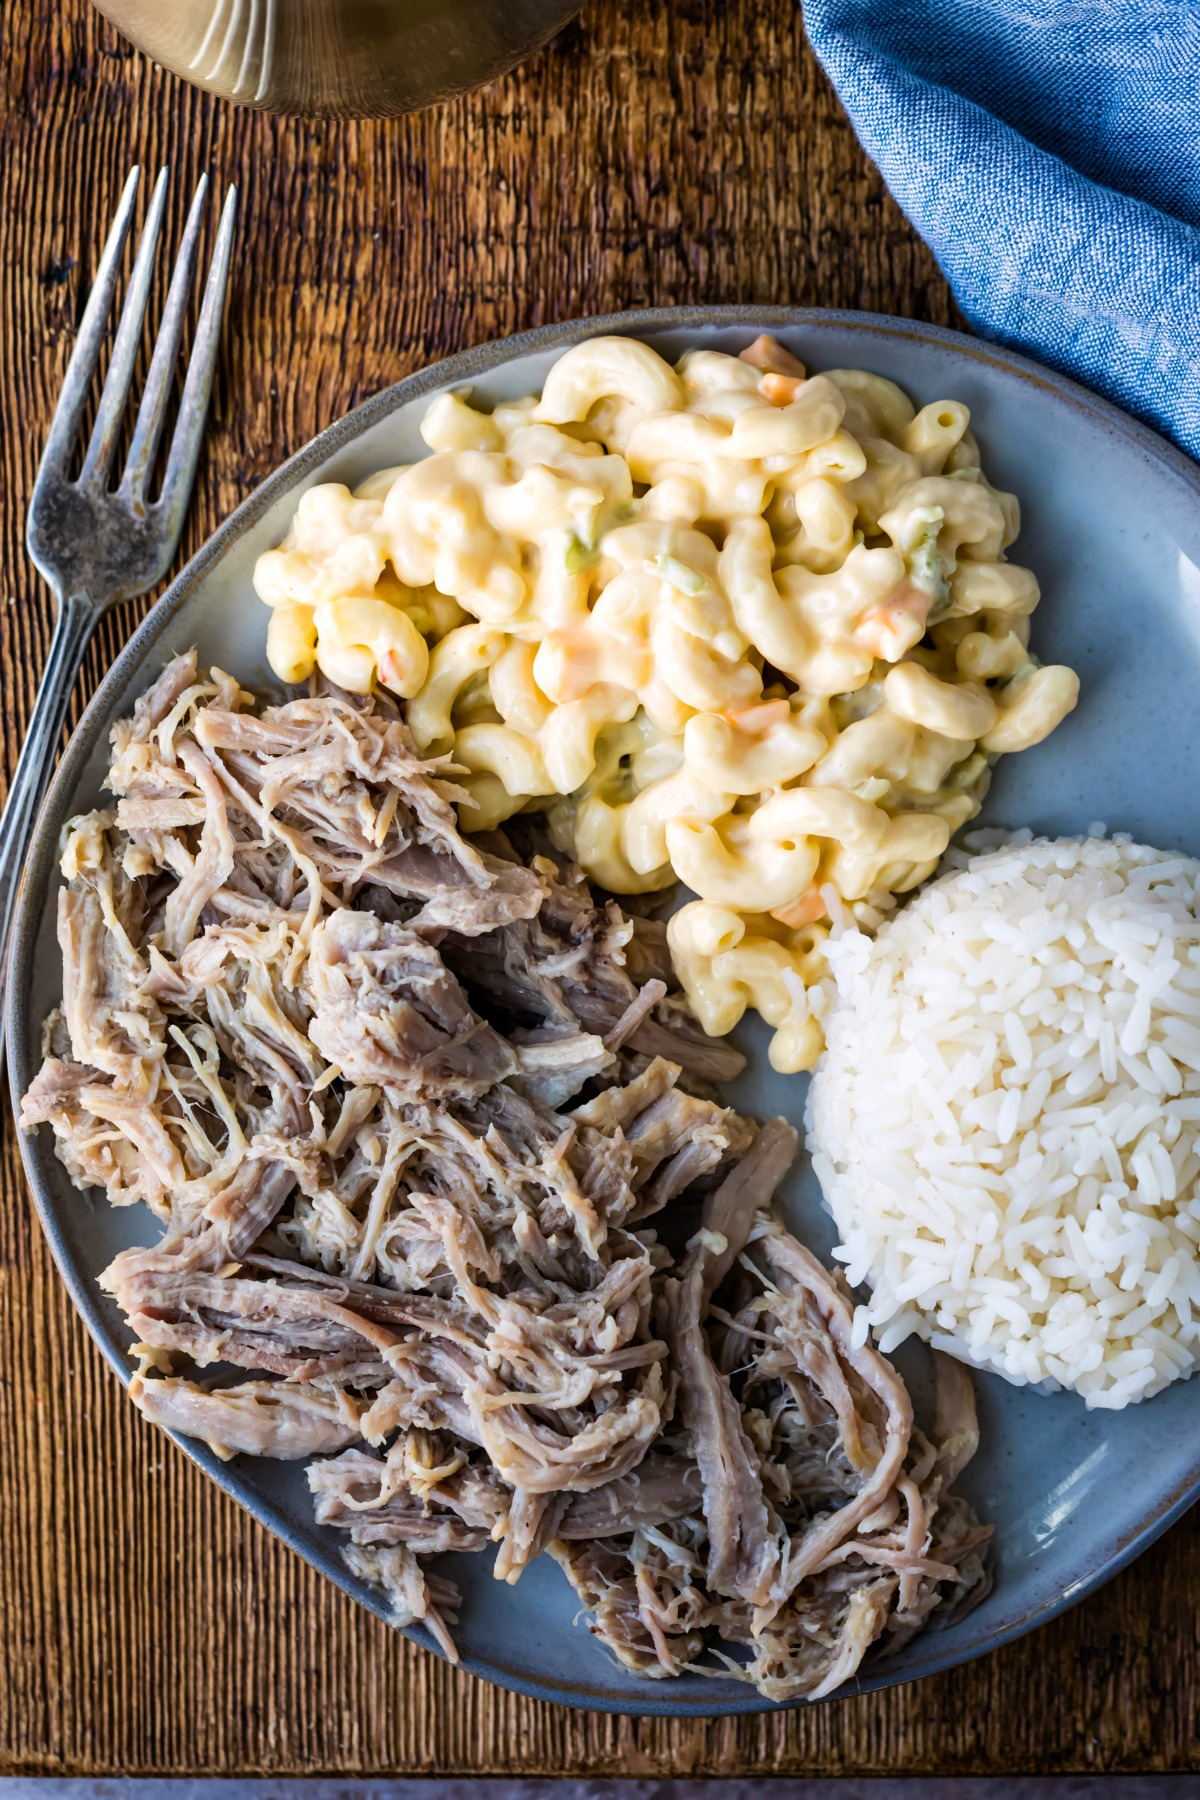 Overhead photo of shredded kalua pork next to macaroni salad and rice